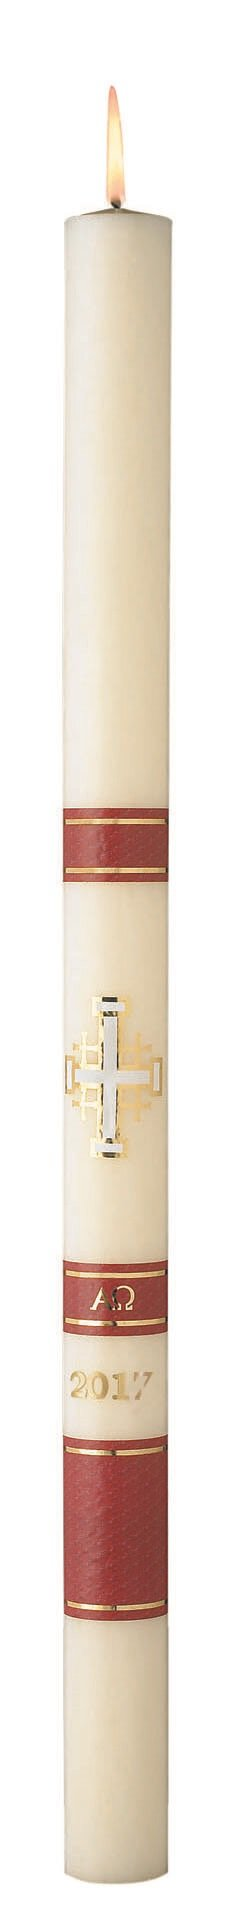 No 15 Jerusalem Paschal Candle